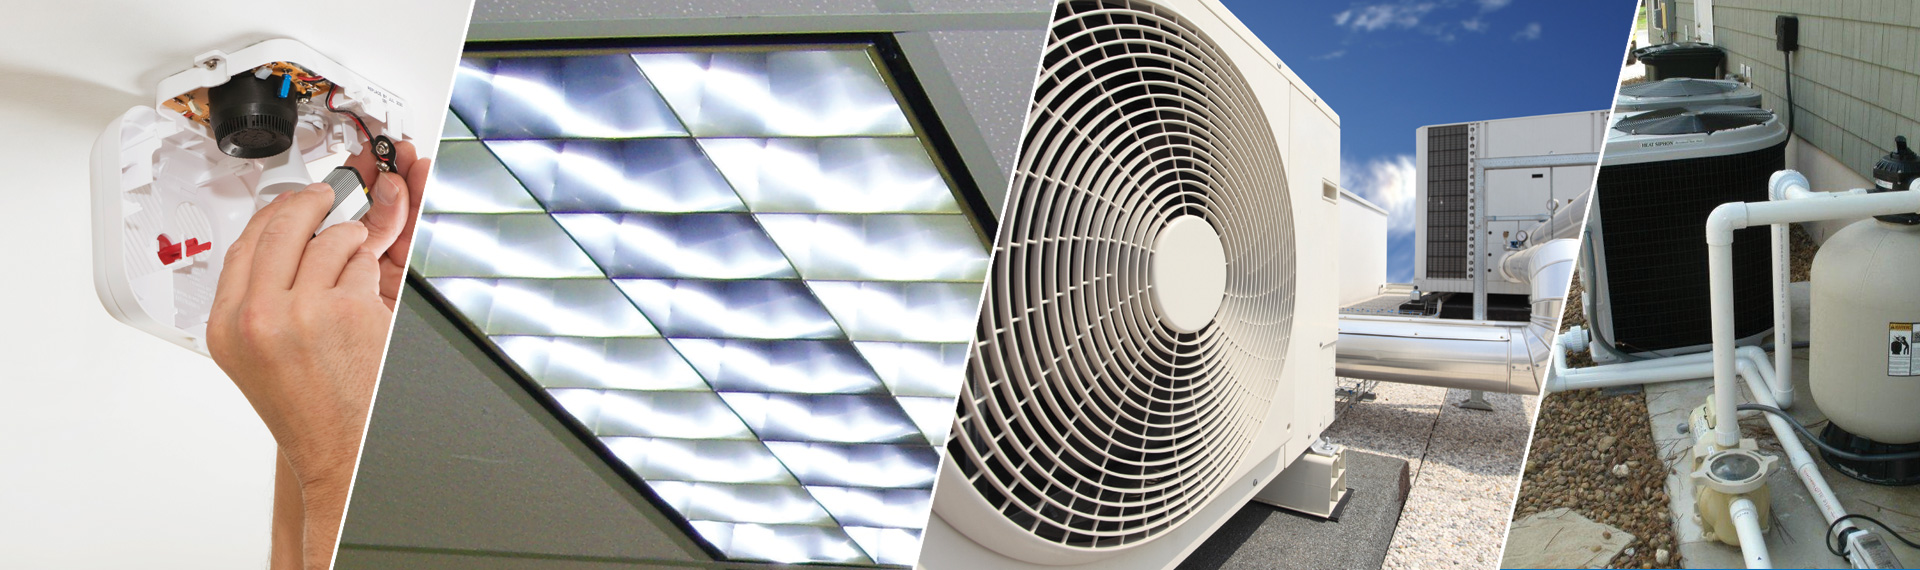 All Service Electric Heating And Cooling Guttenberg NJ